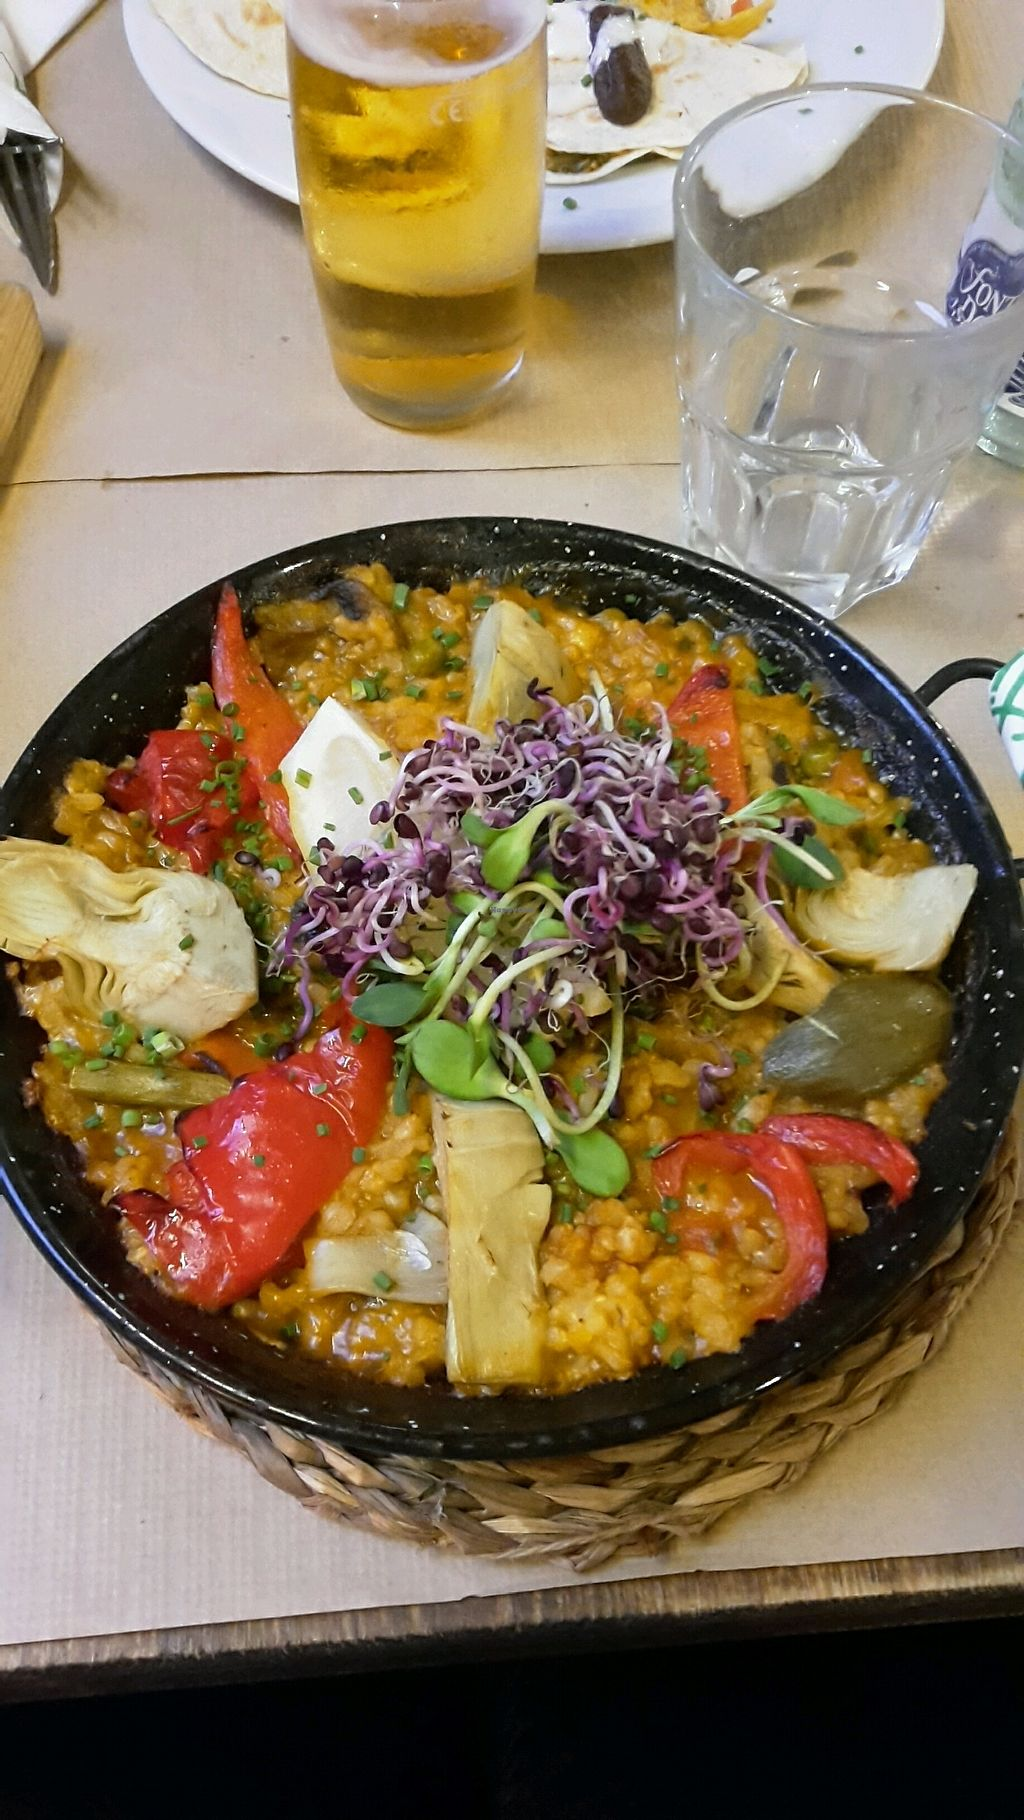 """Photo of Vegetalia - Born  by <a href=""""/members/profile/Little_Travaller"""">Little_Travaller</a> <br/>vegan Paella <br/> September 22, 2017  - <a href='/contact/abuse/image/60646/307104'>Report</a>"""